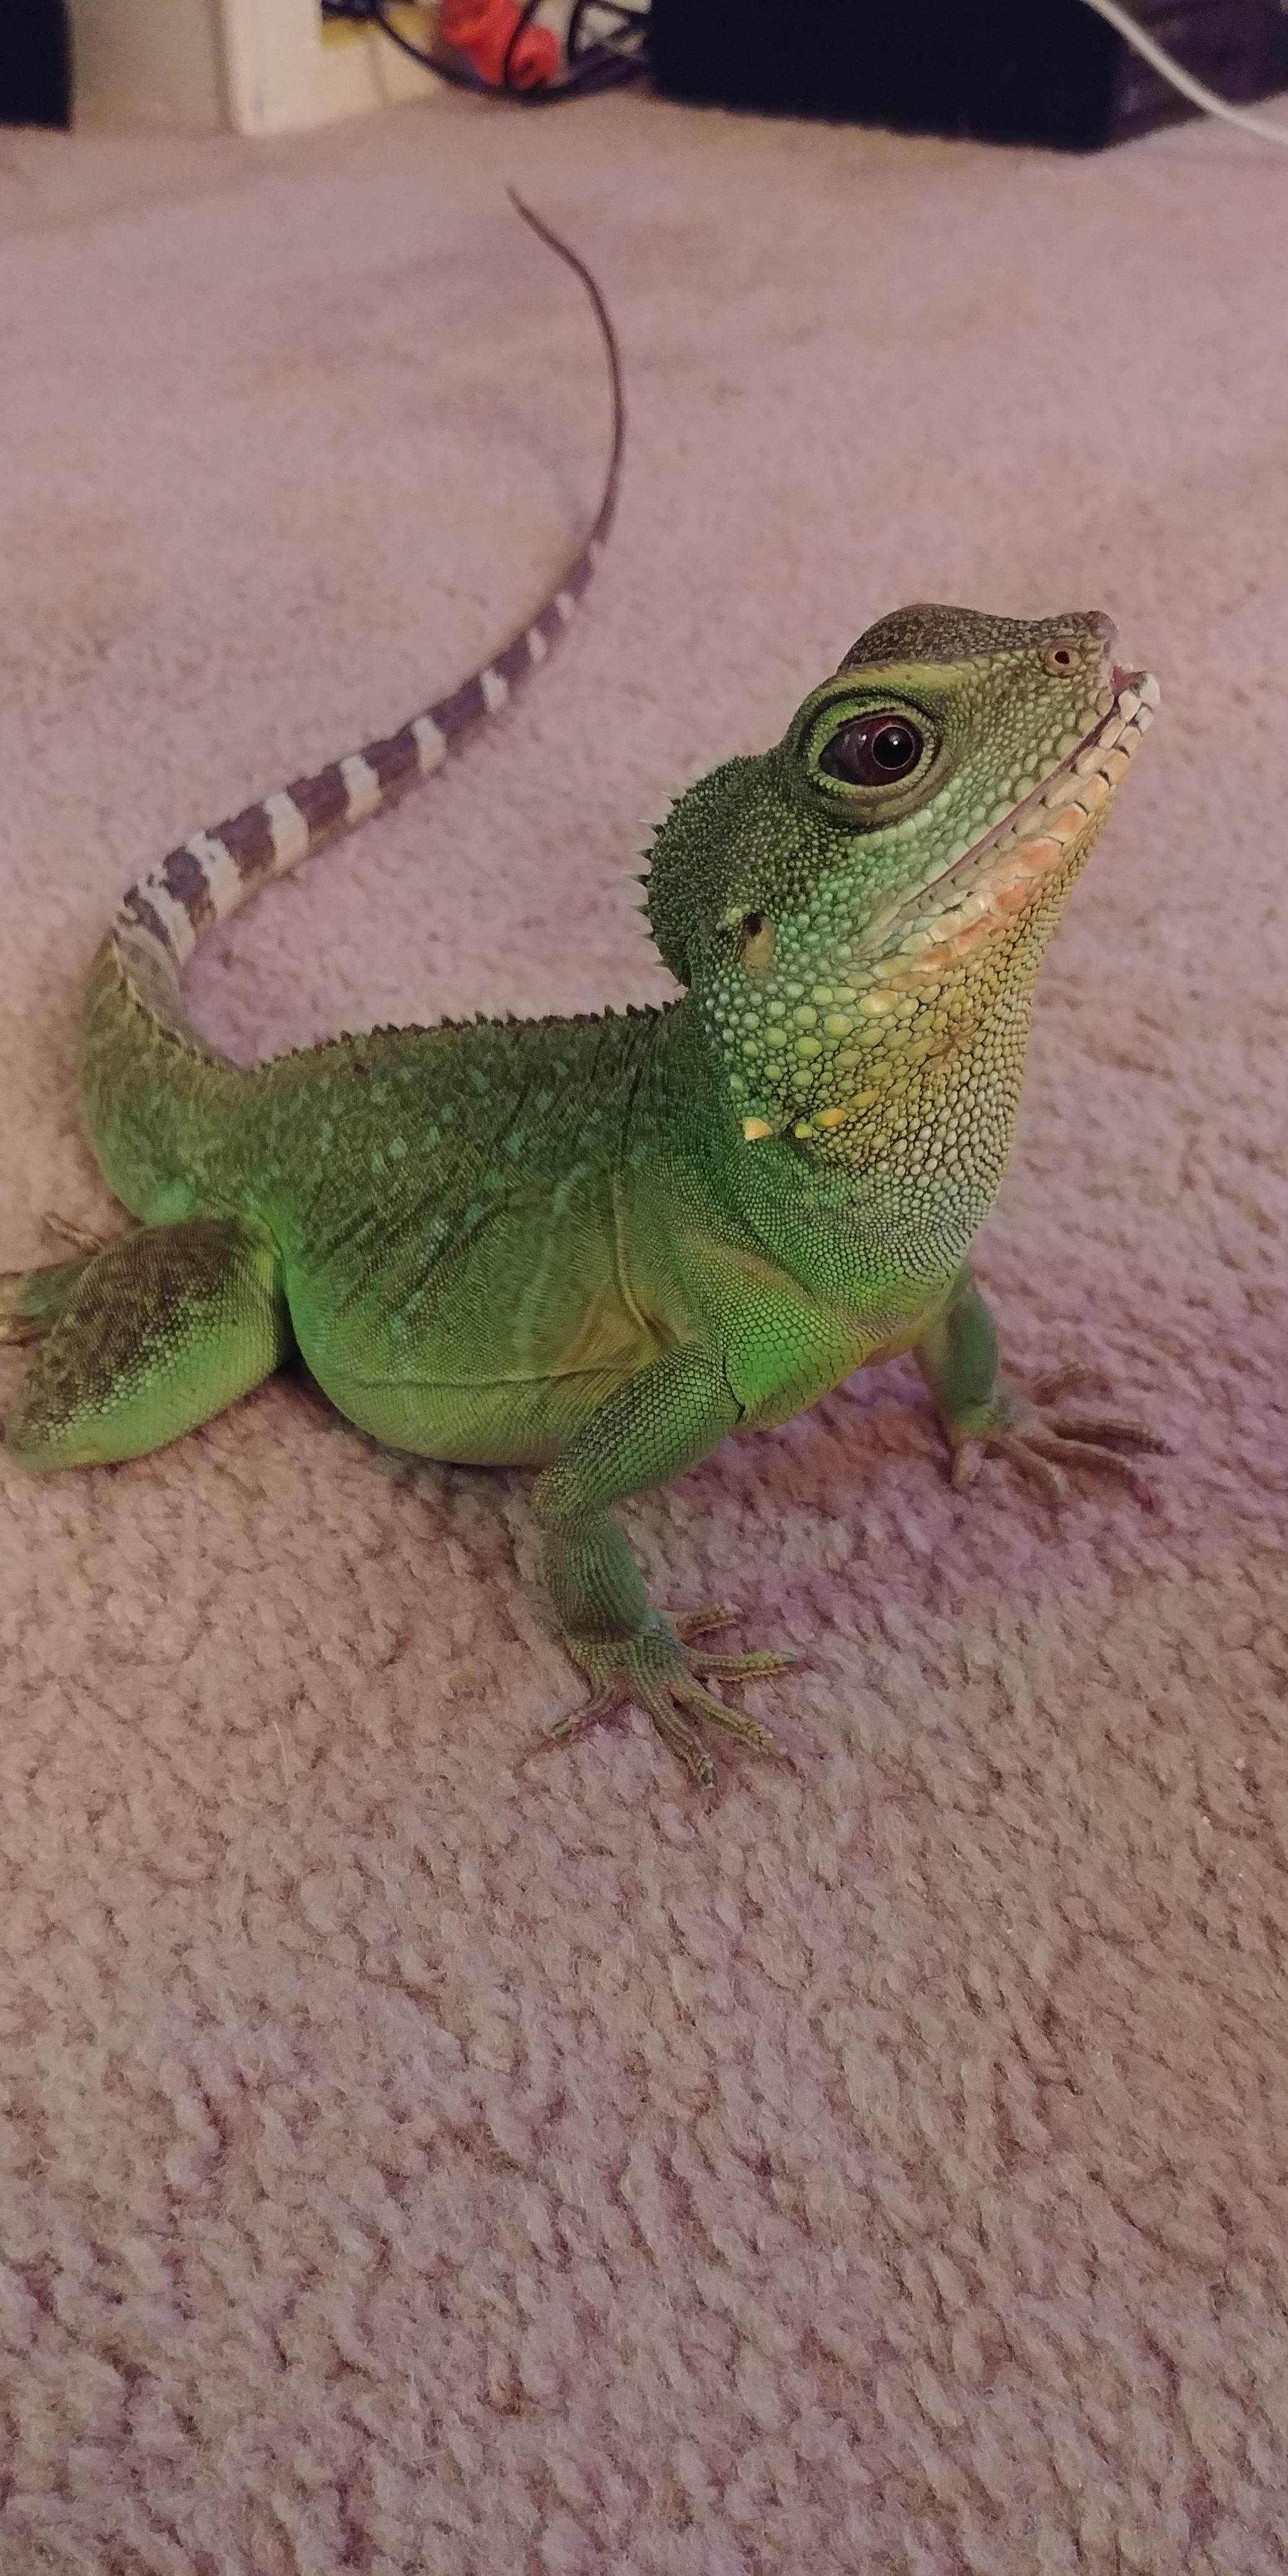 How Much Do Lizards Cost At Petsmart : lizards, petsmart, About, Months, Petsmart, Where, Surfed, Glass, Herself, Mouth